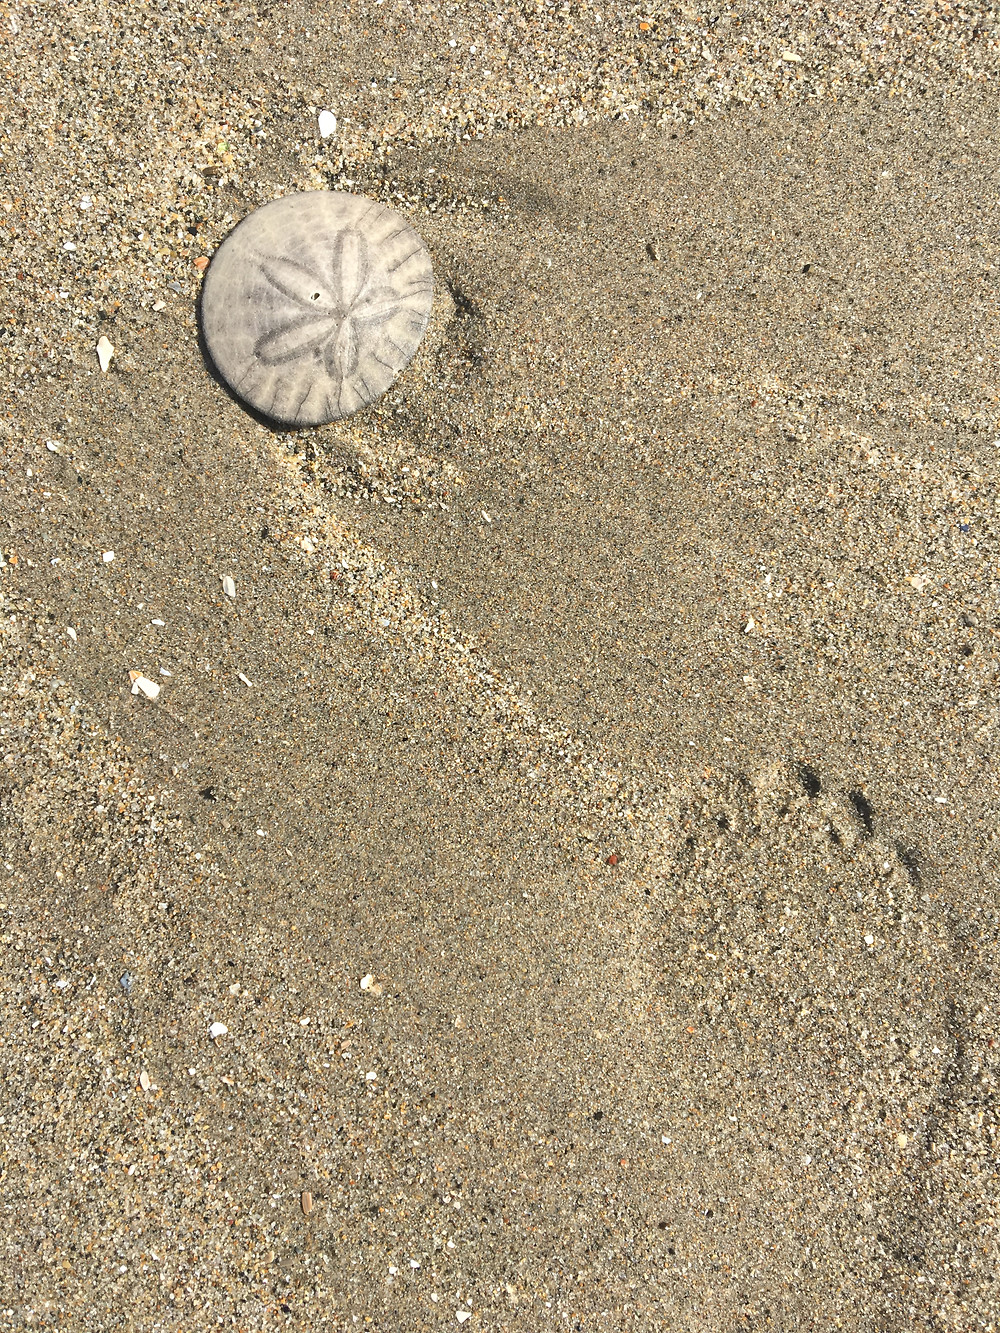 neutral colors in beach sand